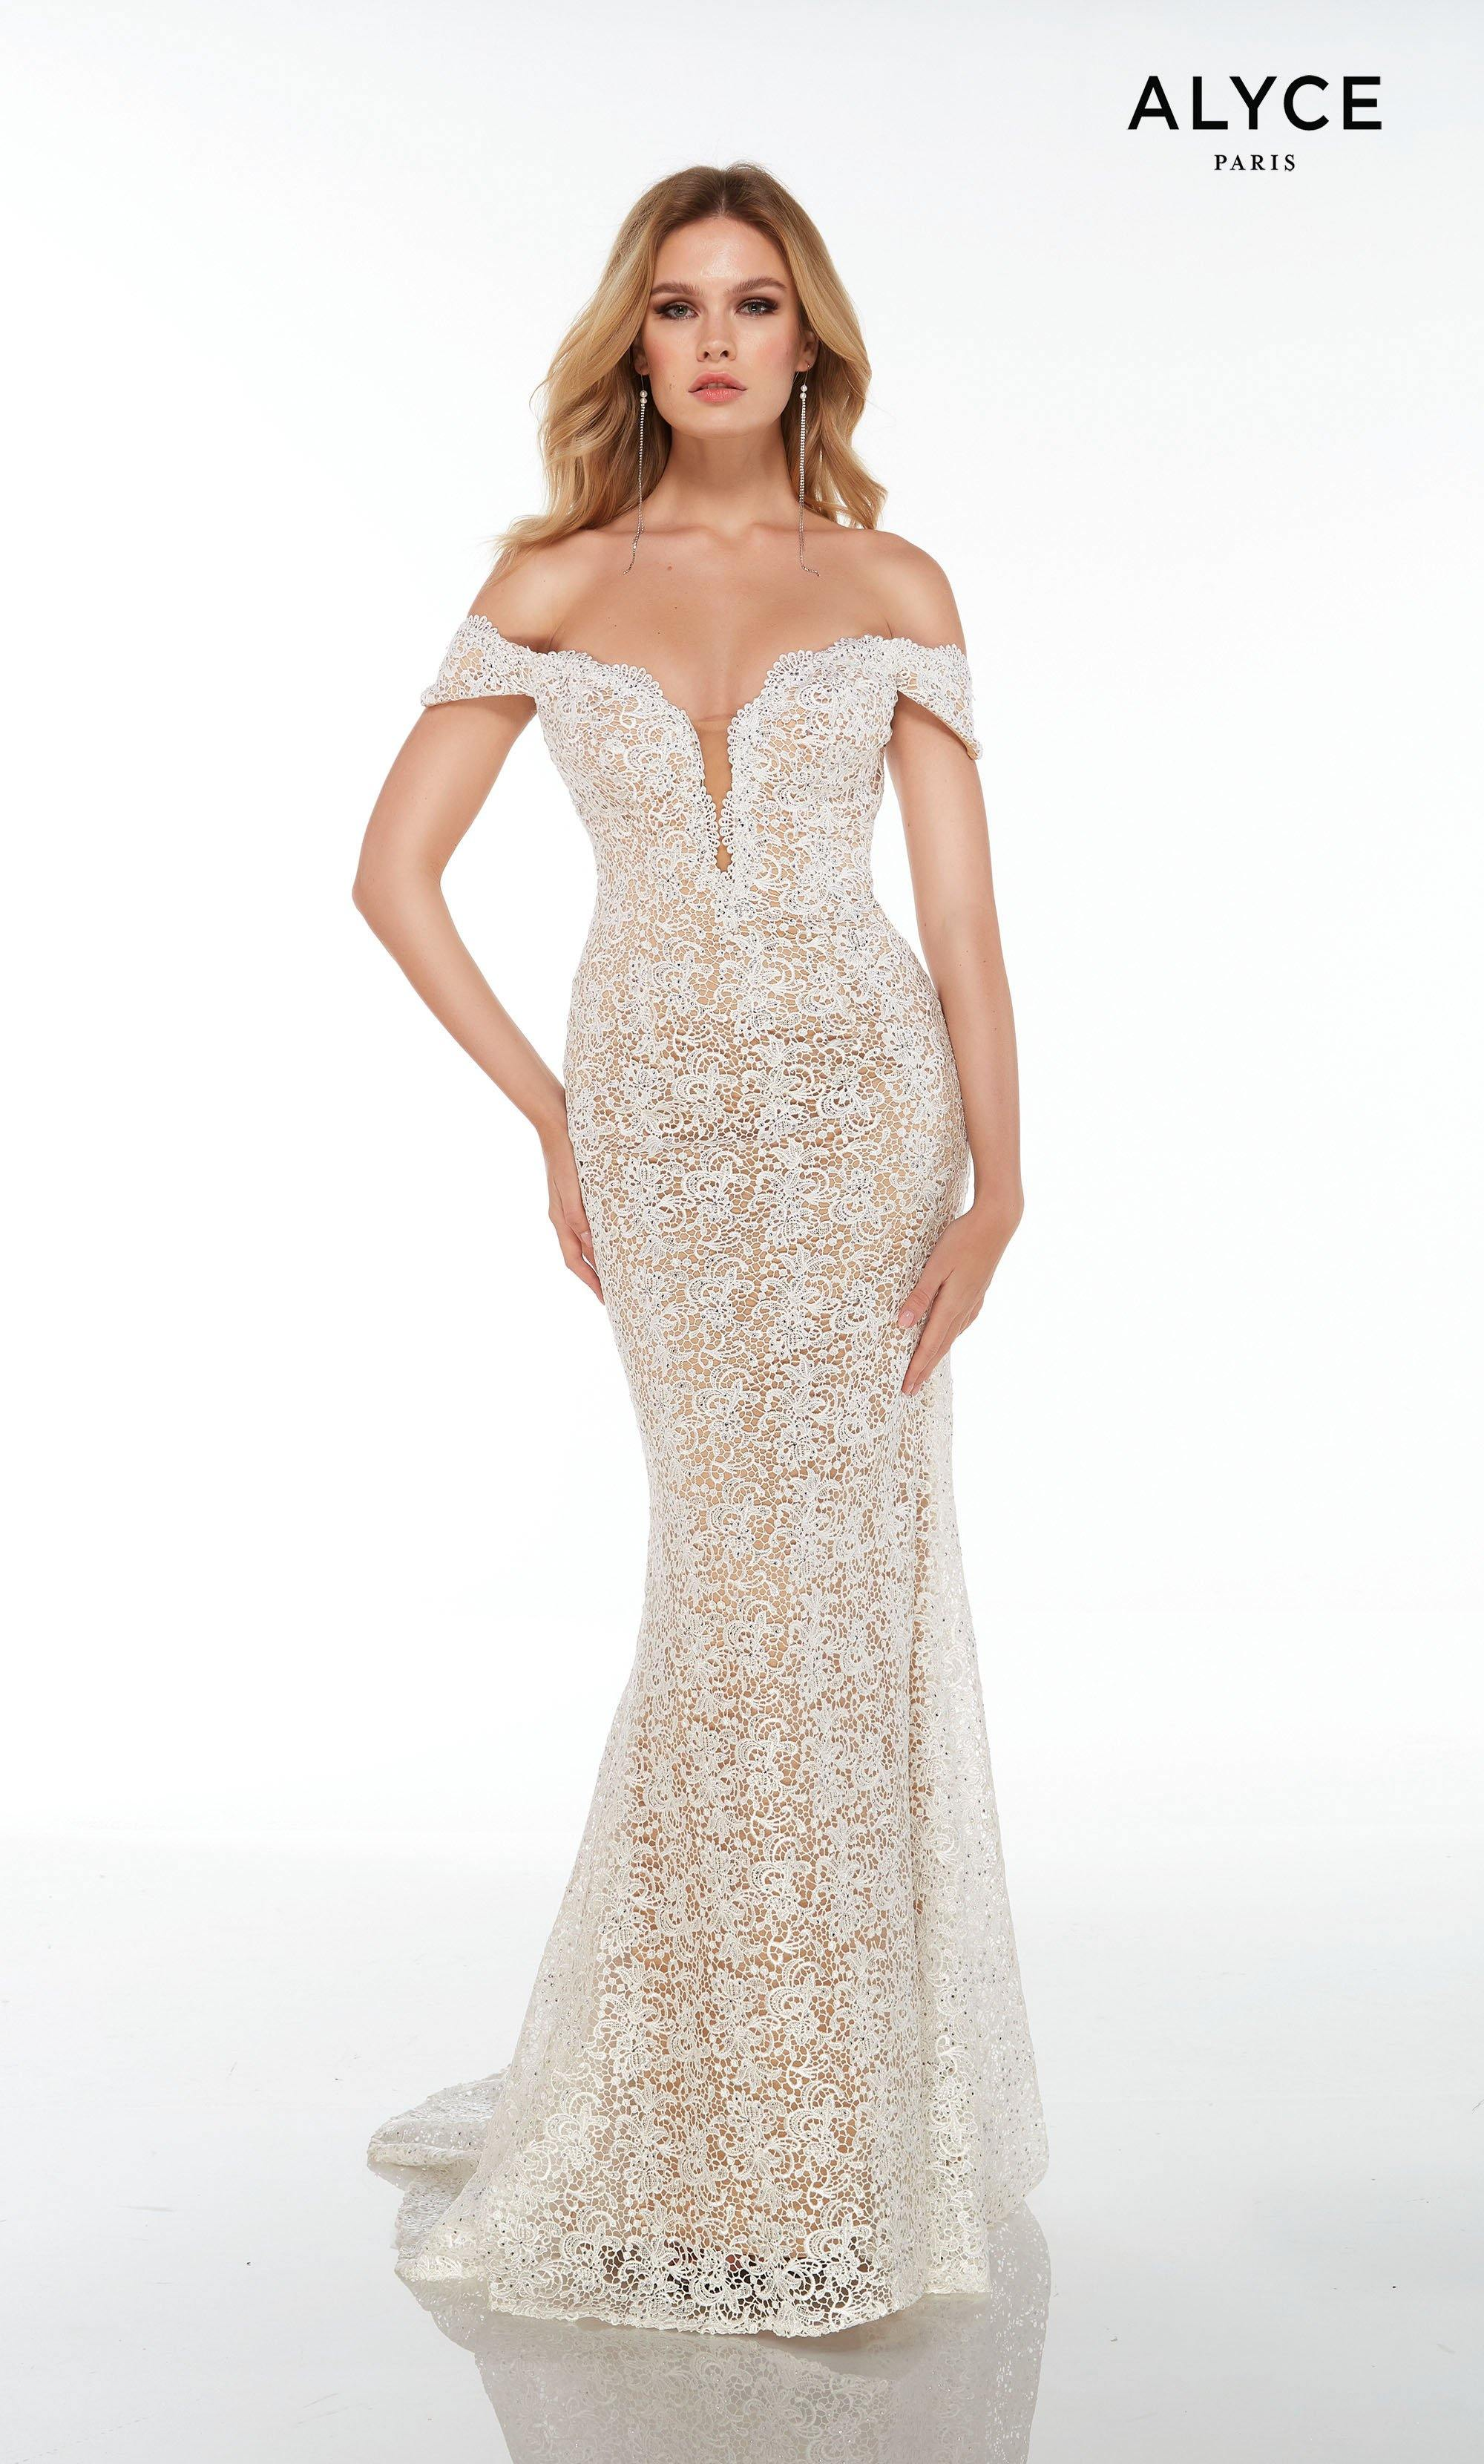 Long White-Nude lace off the shoulder guest of wedding dress with an illusion plunging neckline